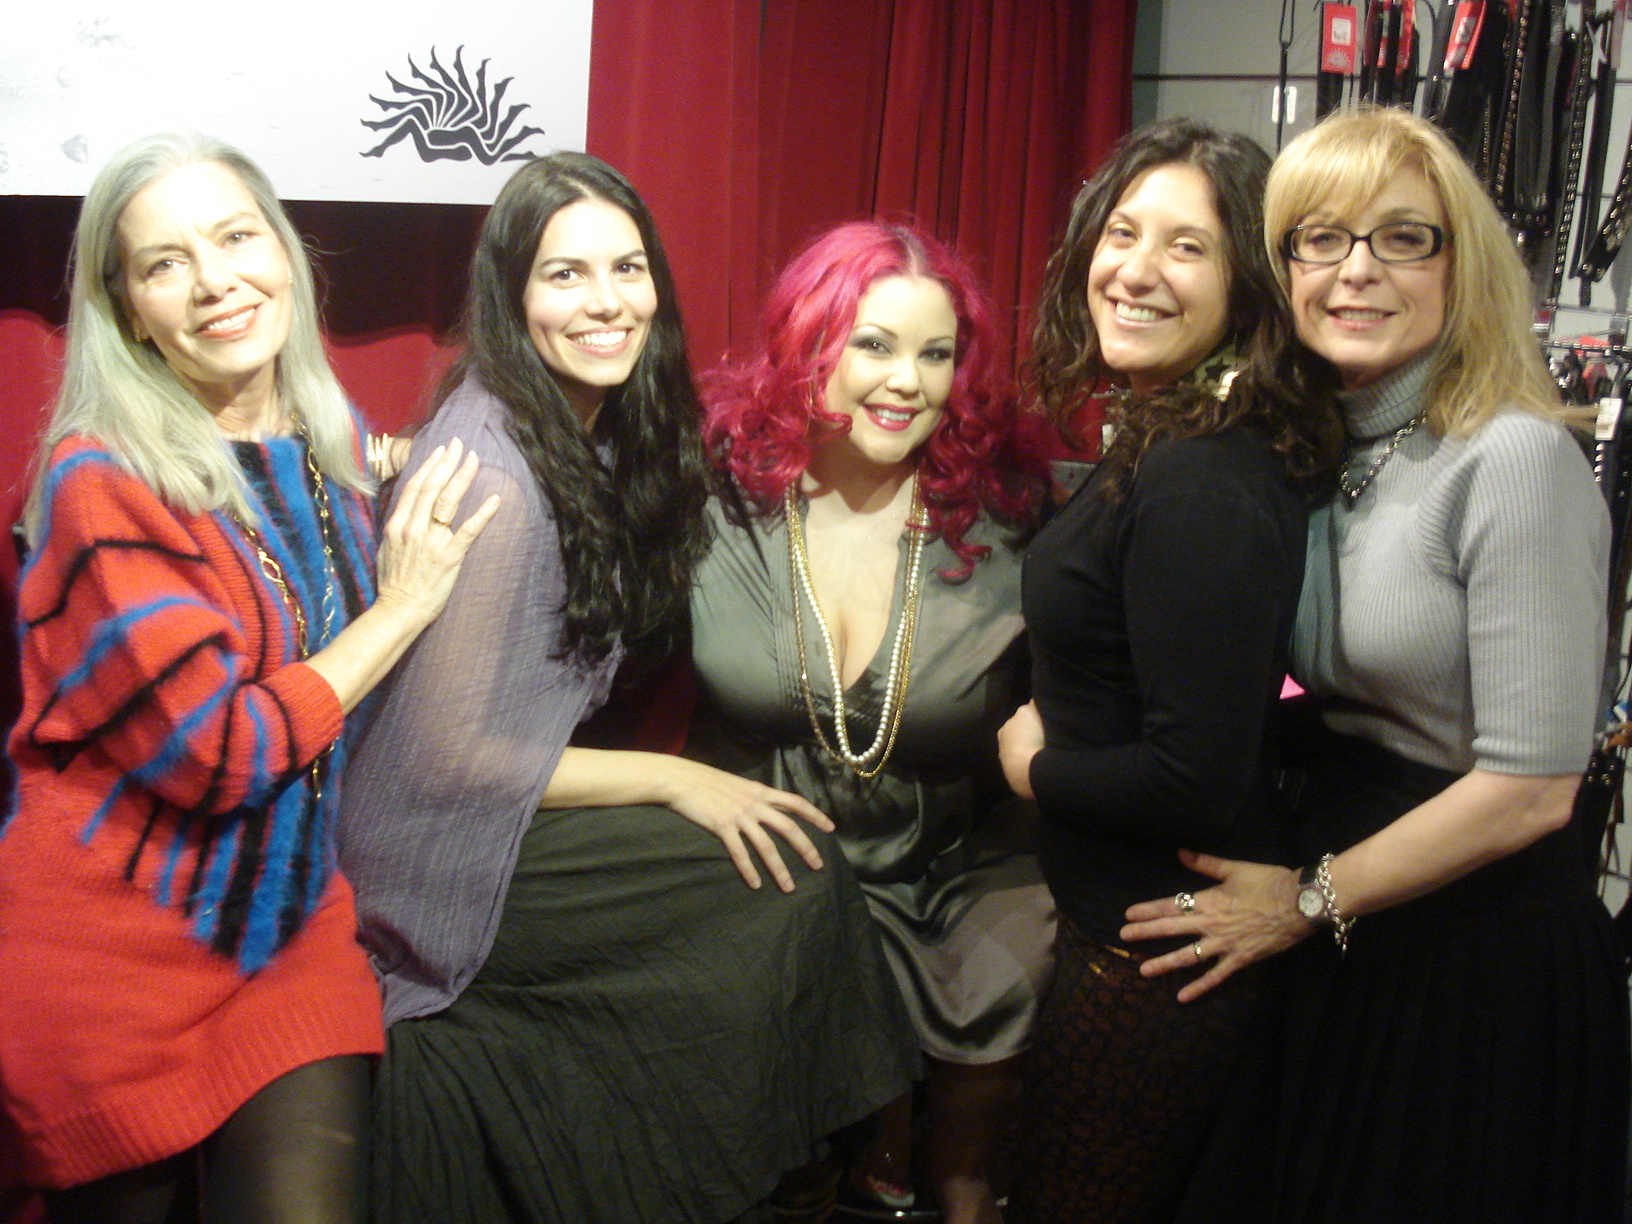 ... pornographer panelists at last night's ��Sex Savvy: Smart Women in Porn�� ...